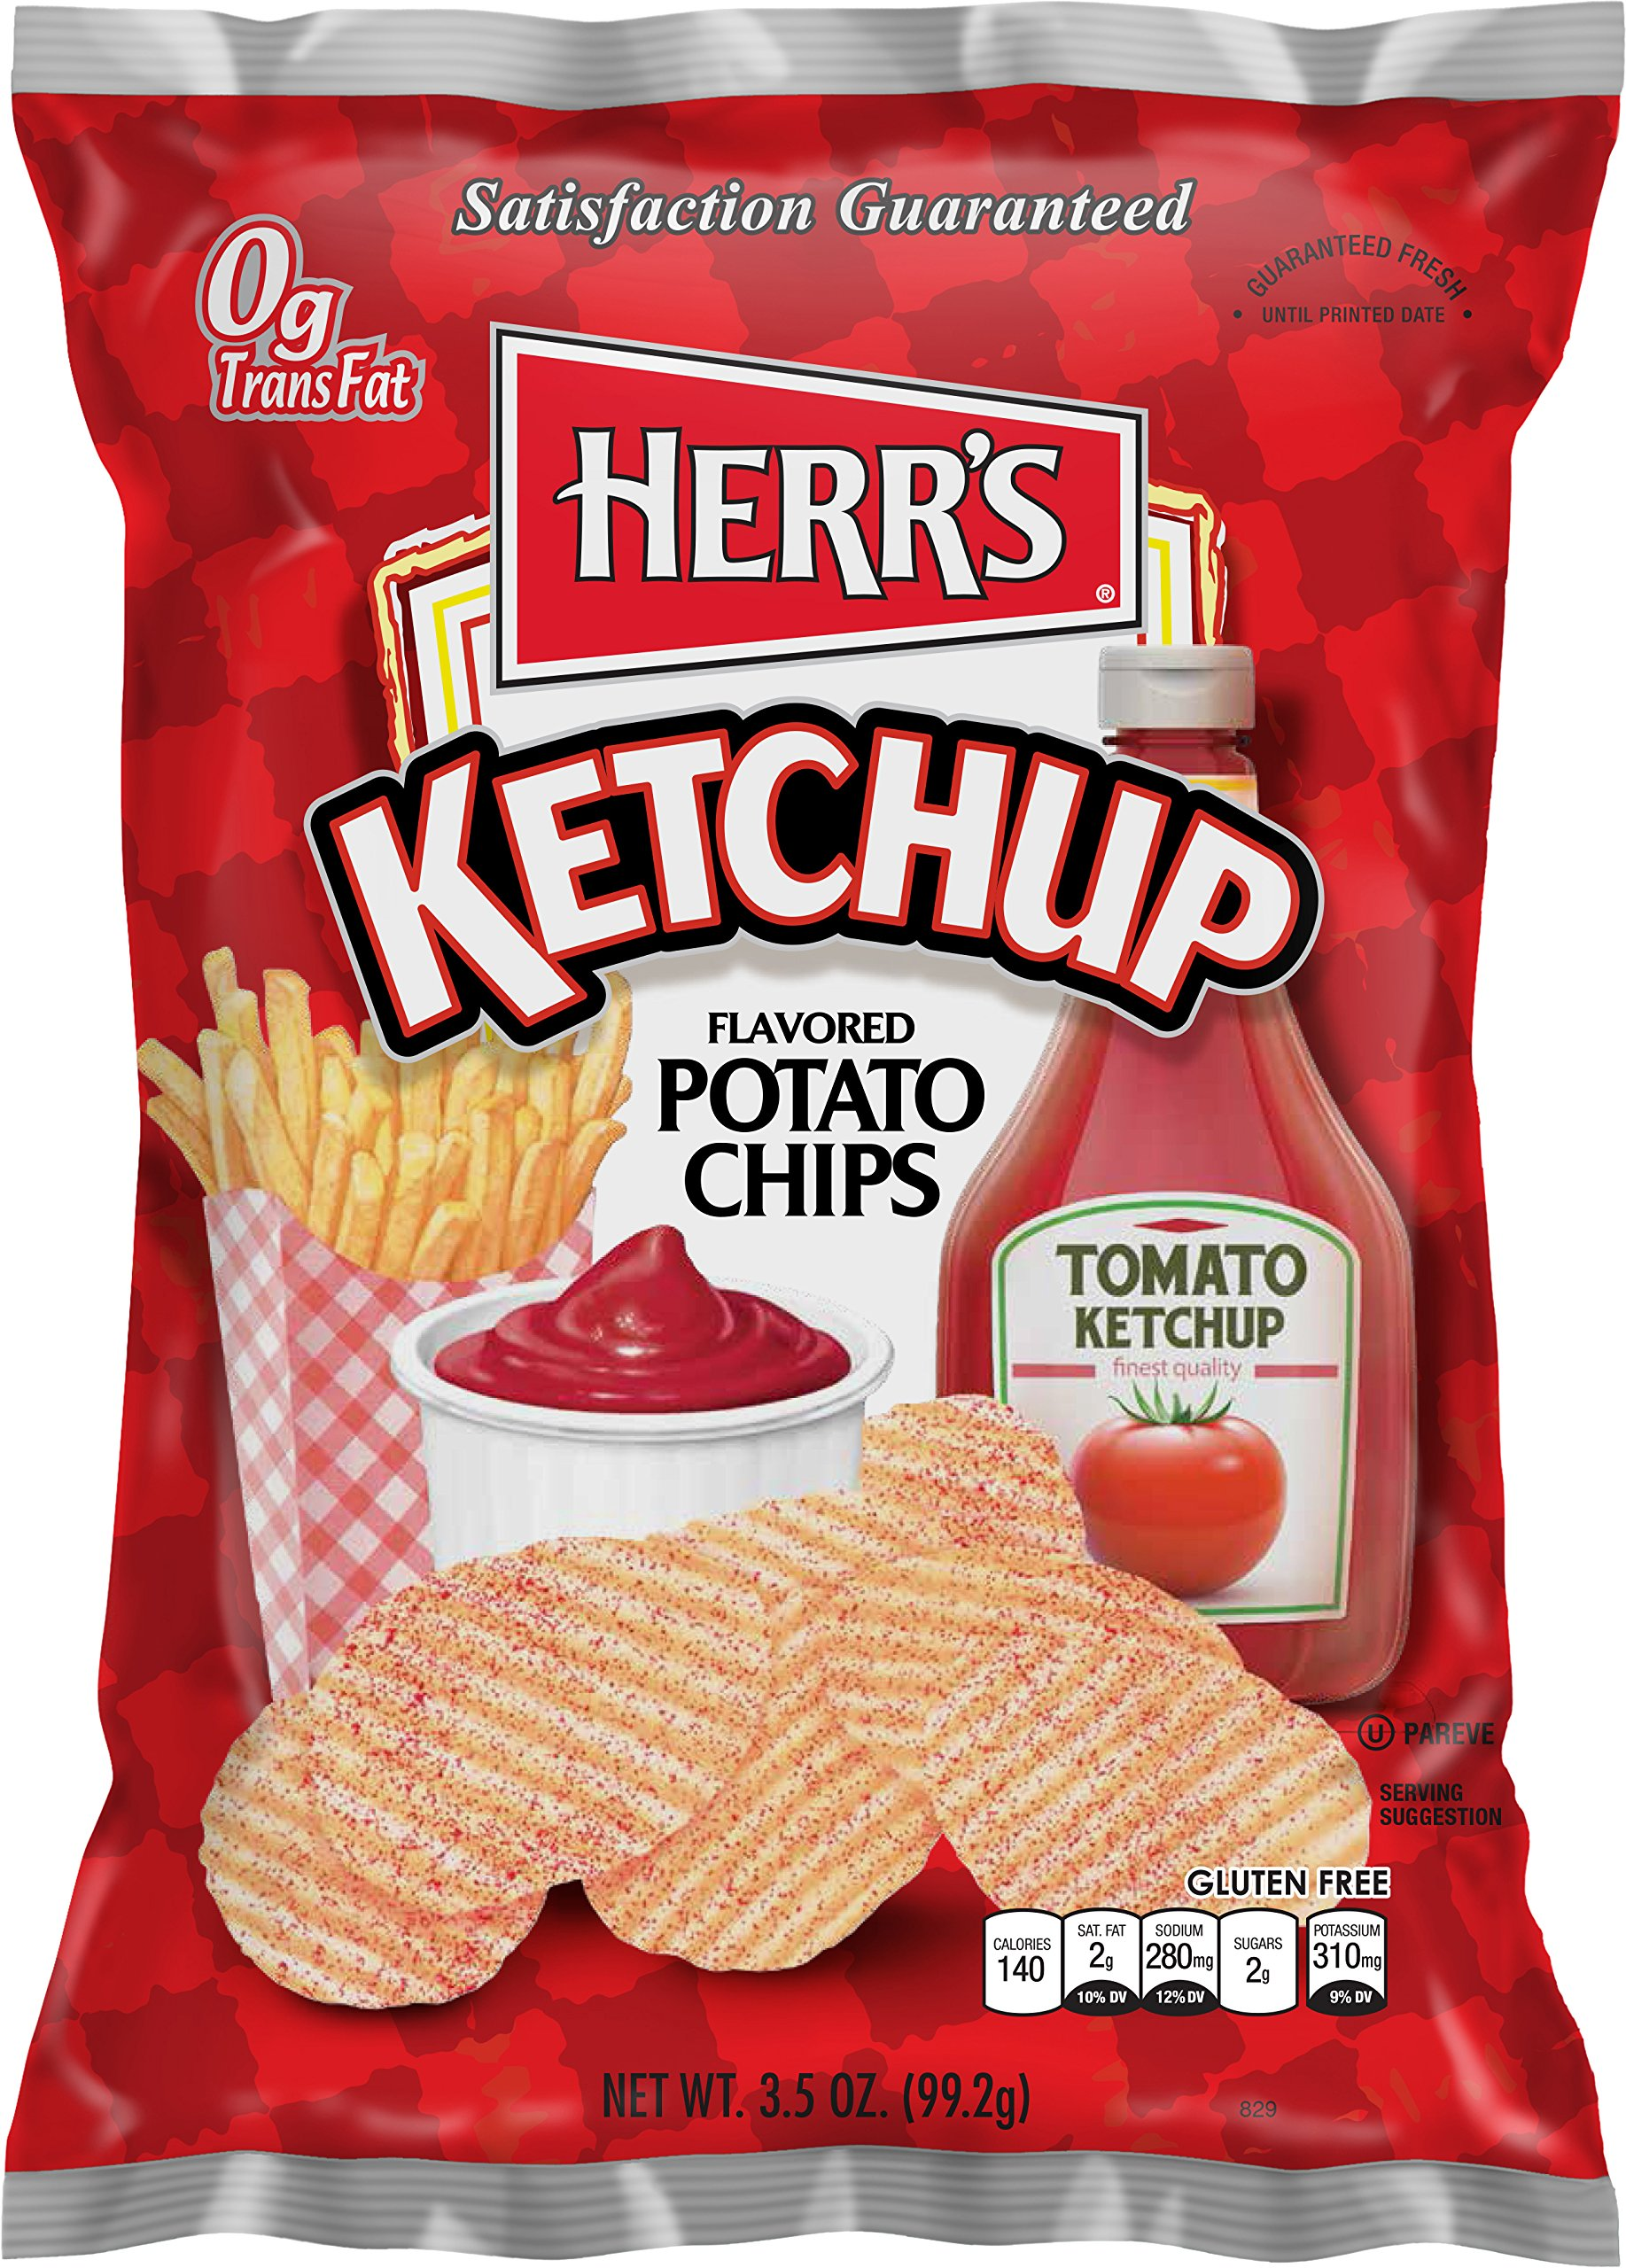 Herr's Ketchup Flavored Potato Chips, 3.5 Ounce (Pack of 16) by Herr's